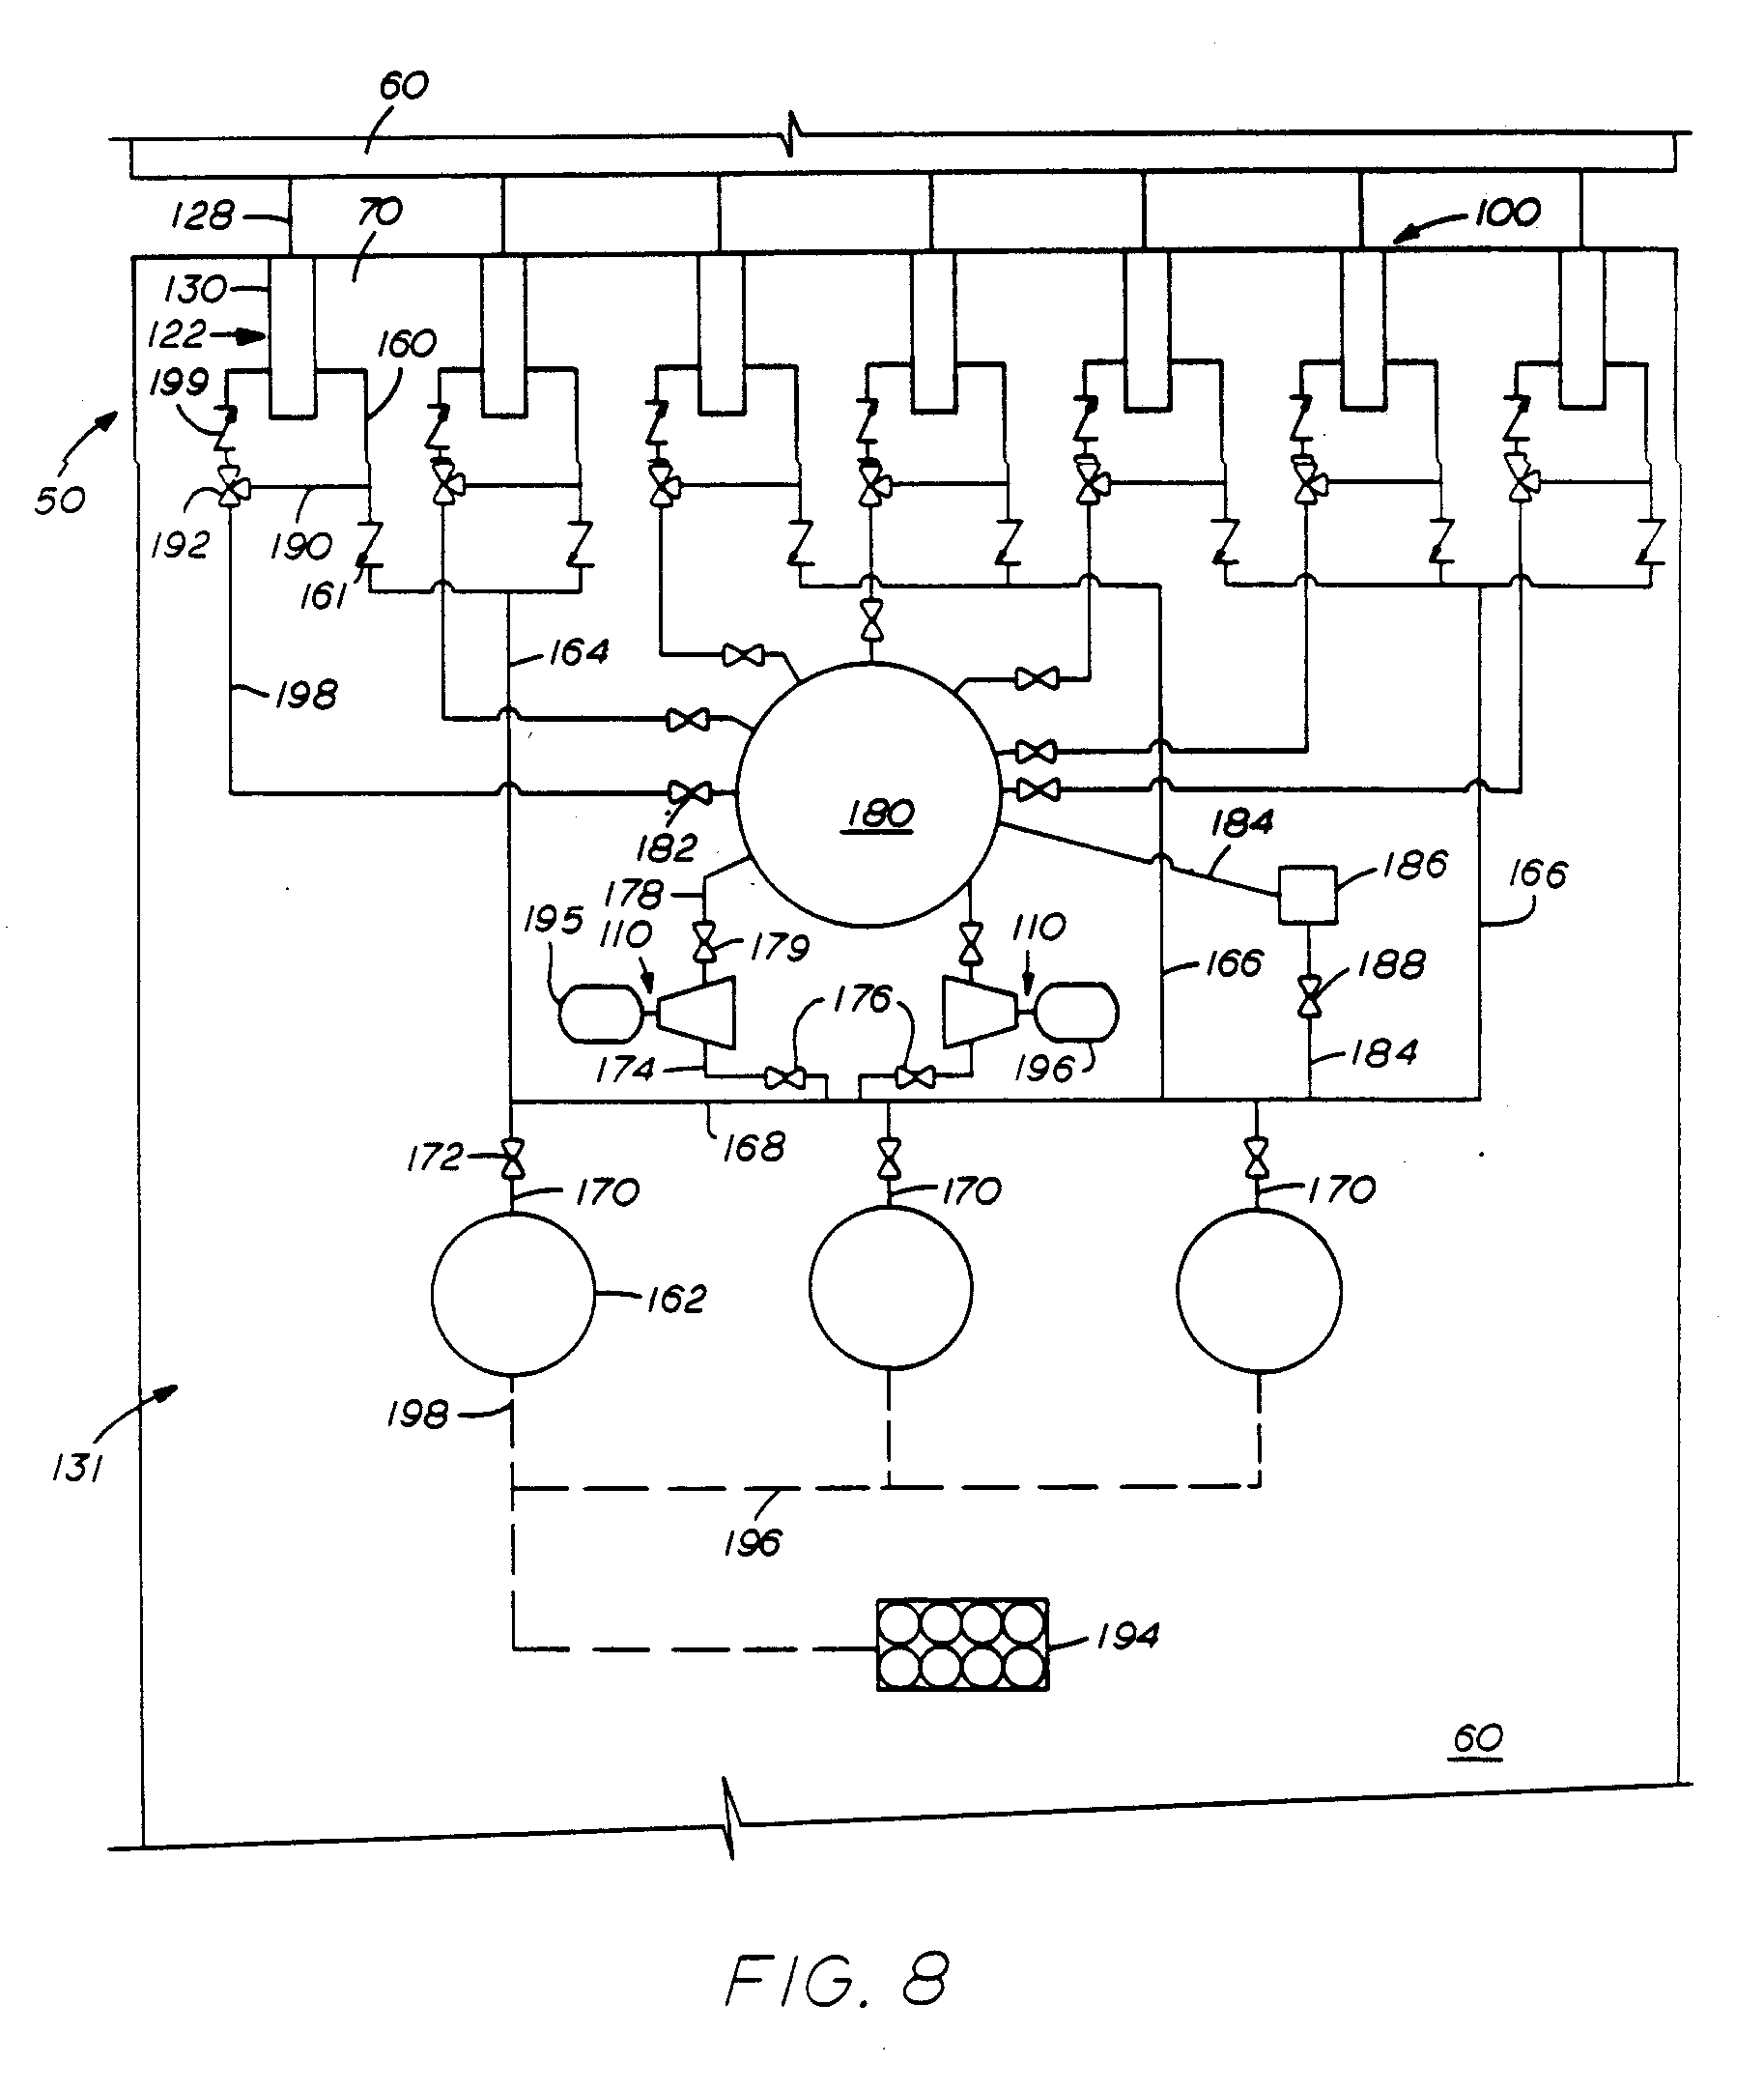 Wiring Diagram For Ring Main